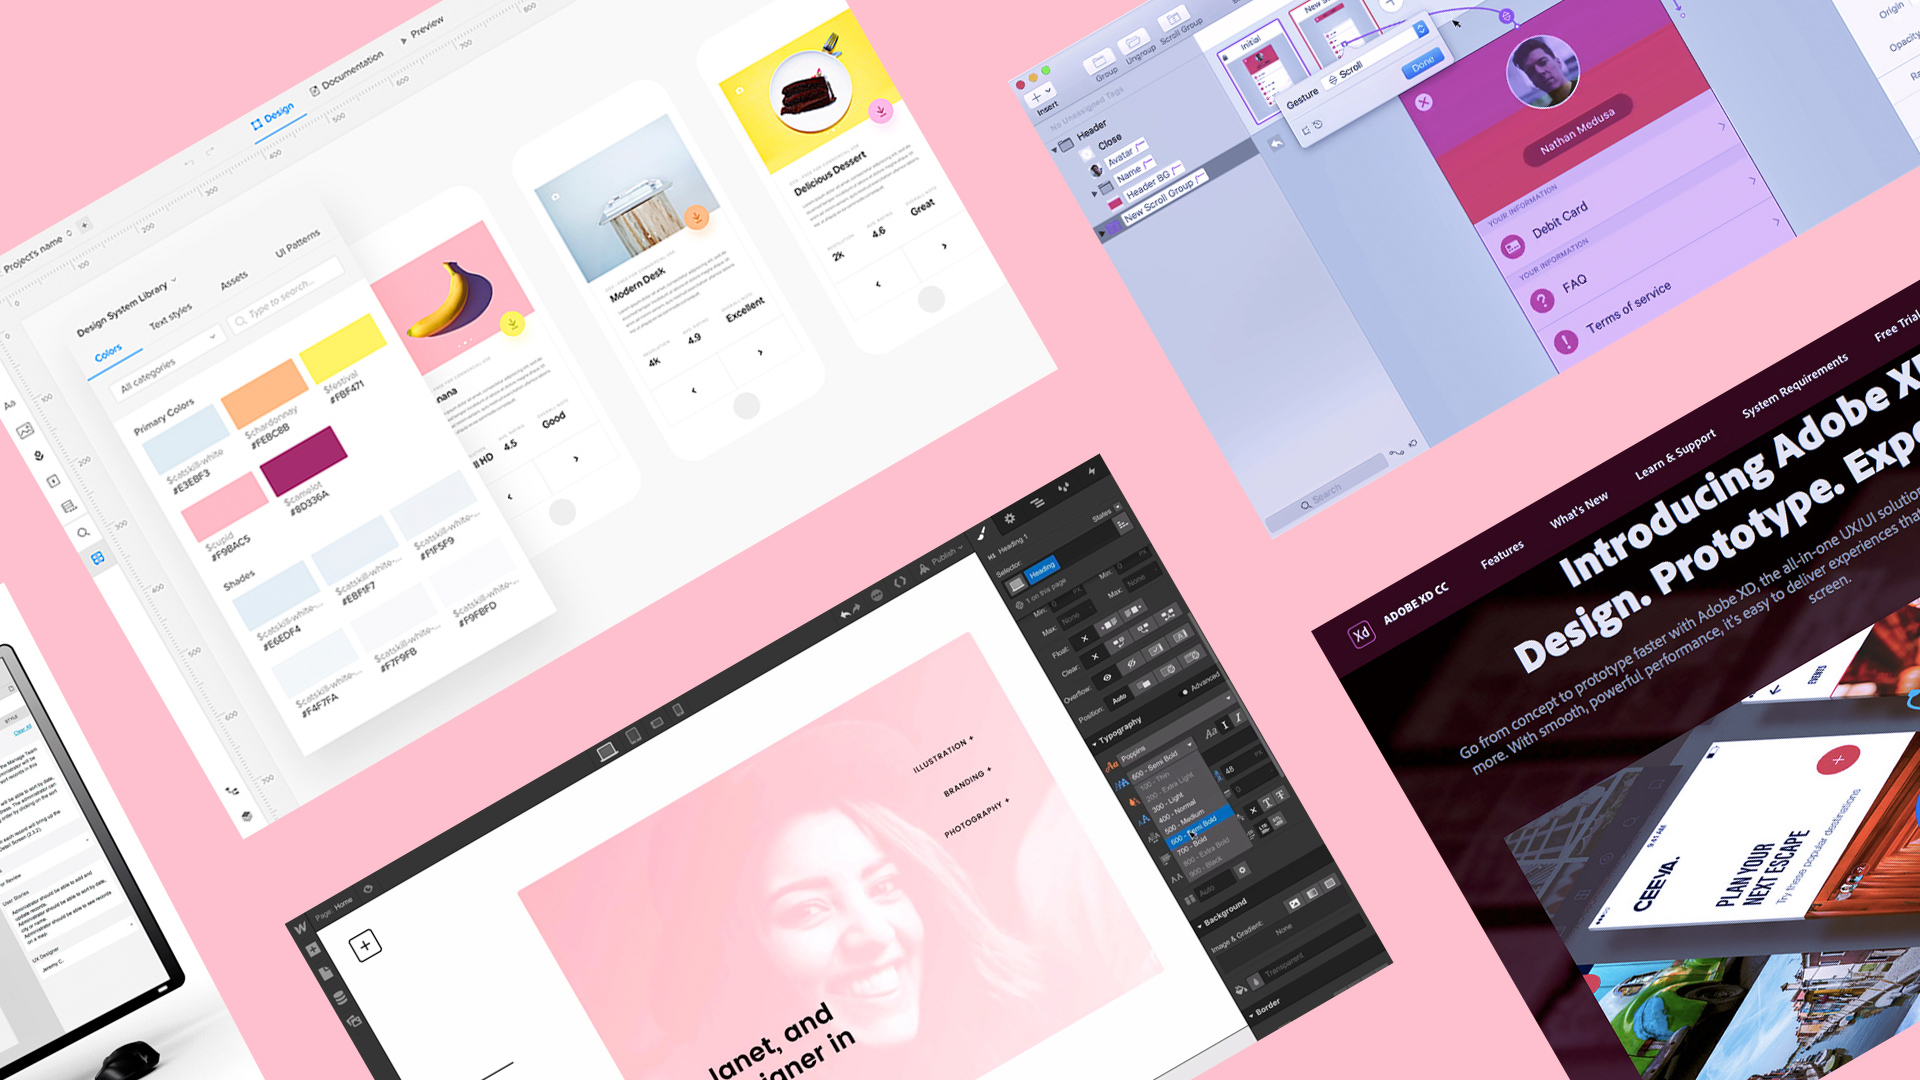 The Best Prototyping Tools for 2018